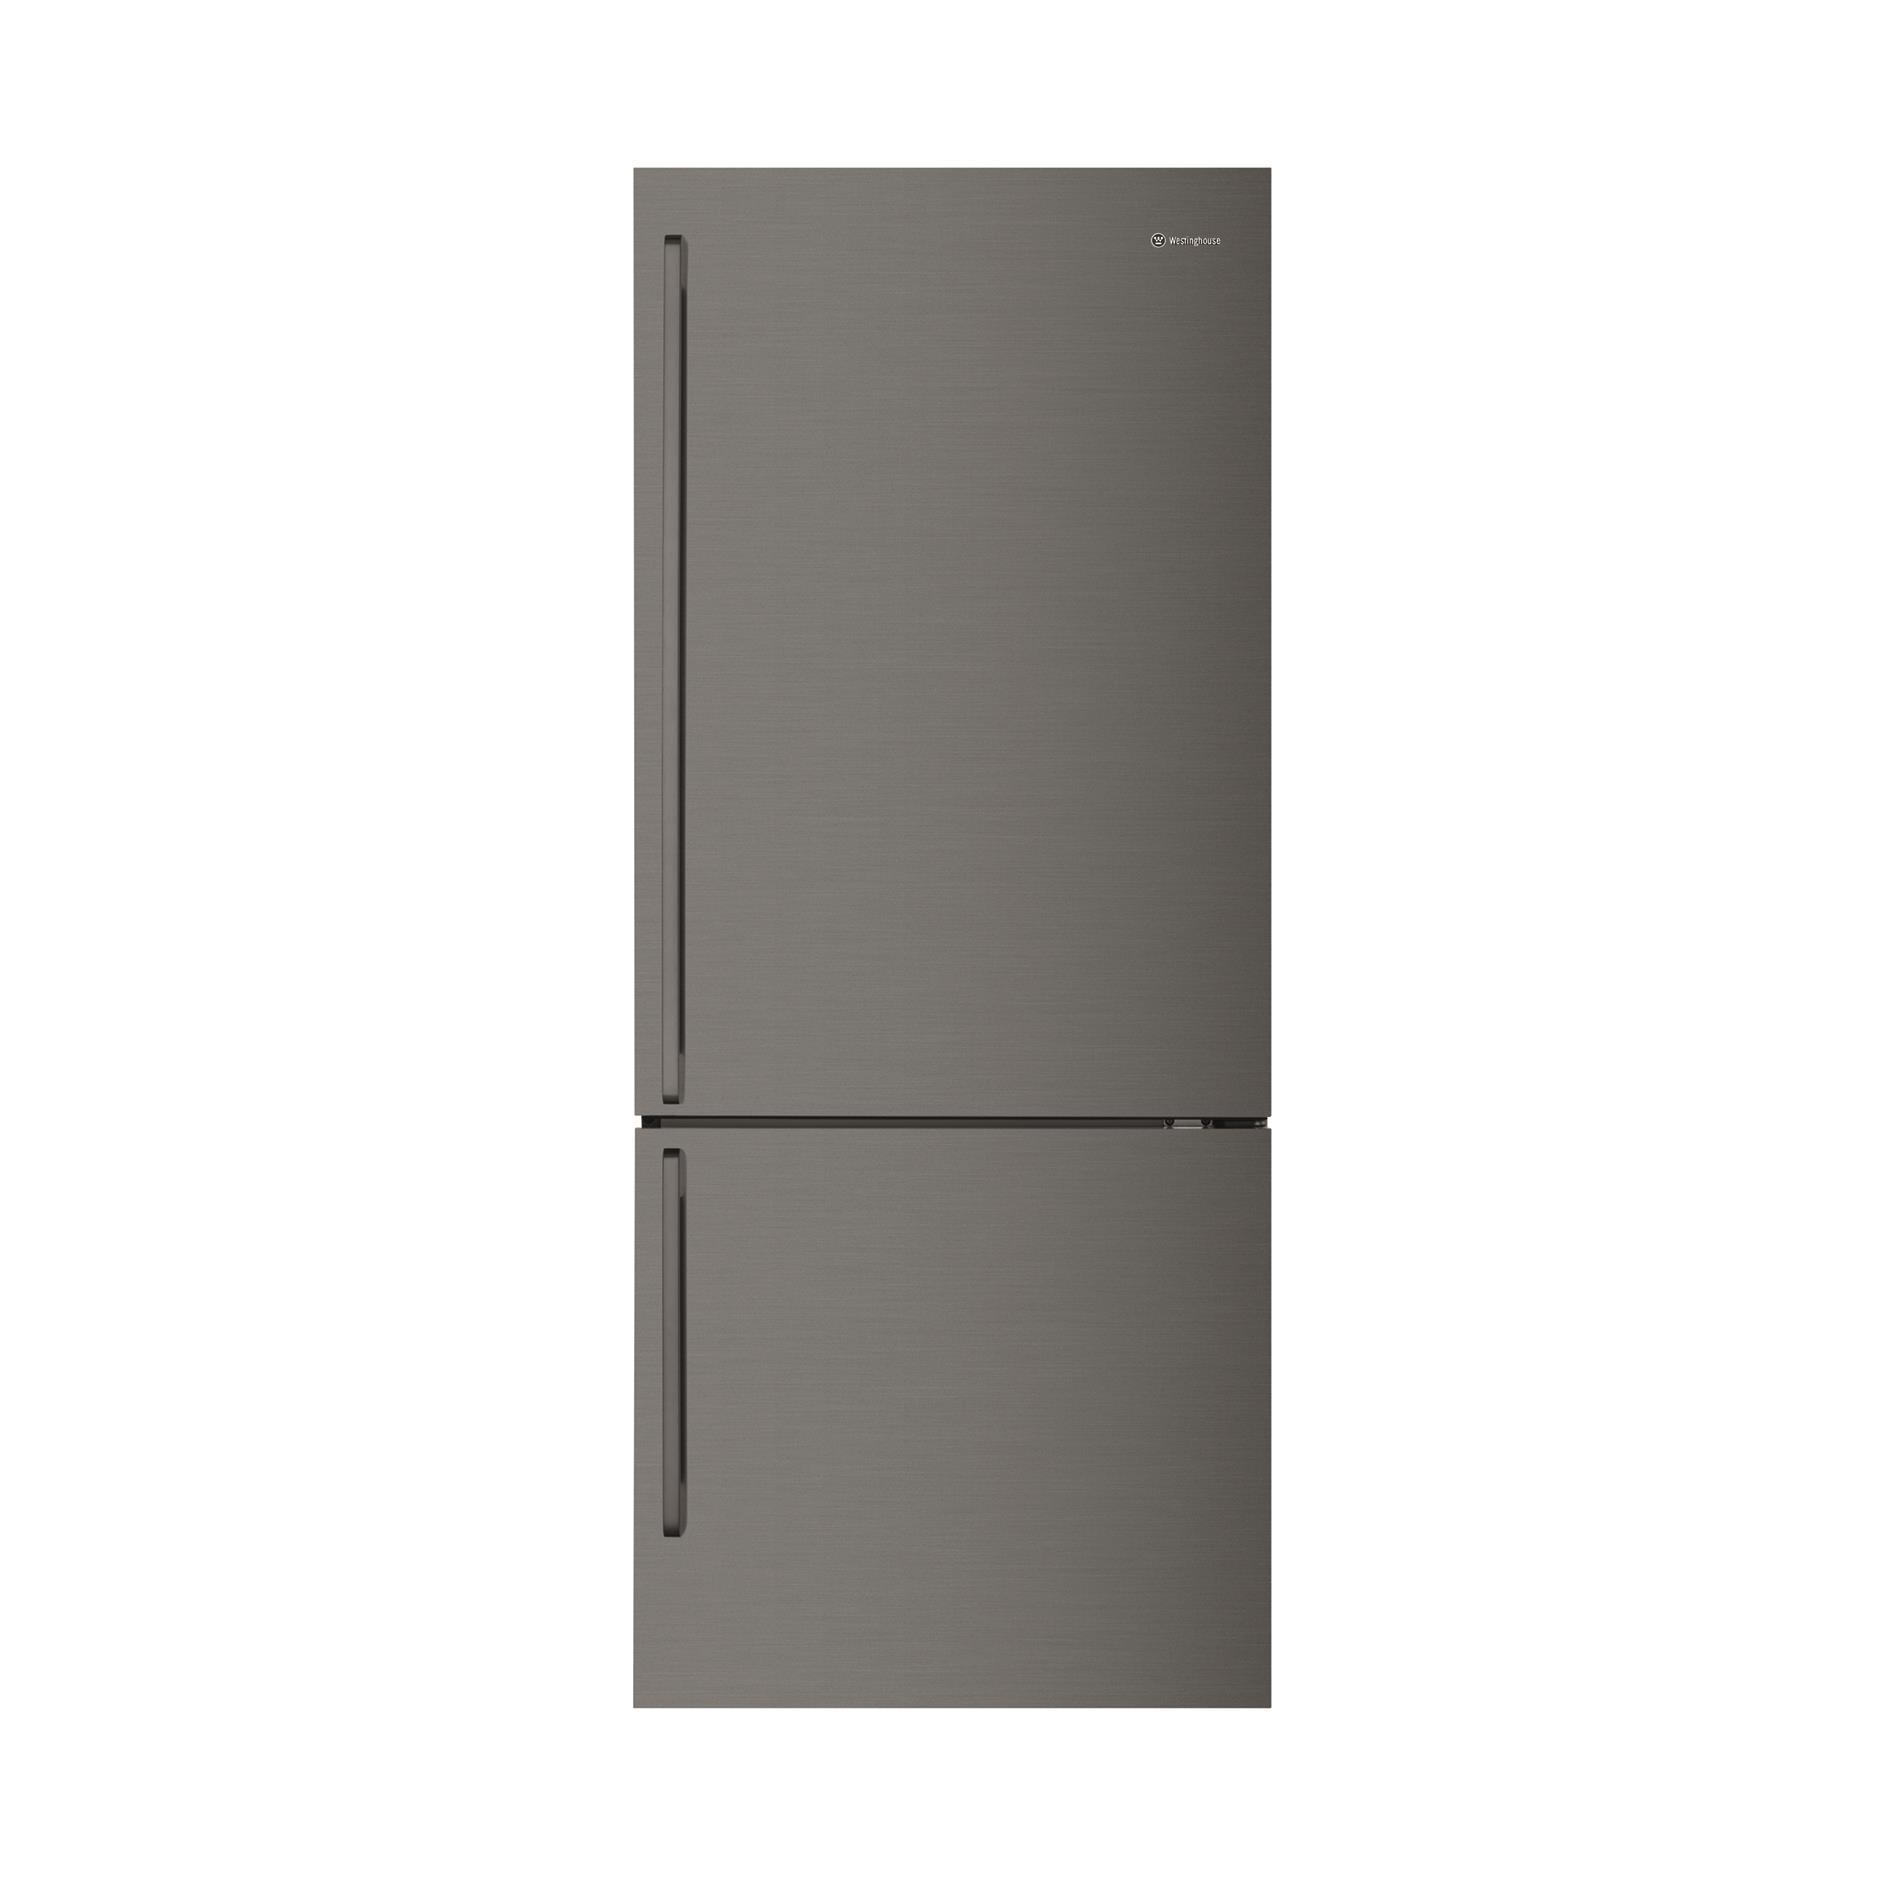 Westinghouse WBE4504BB 453L Bottom Mount Fridge (Dark S/Steel) [Right]